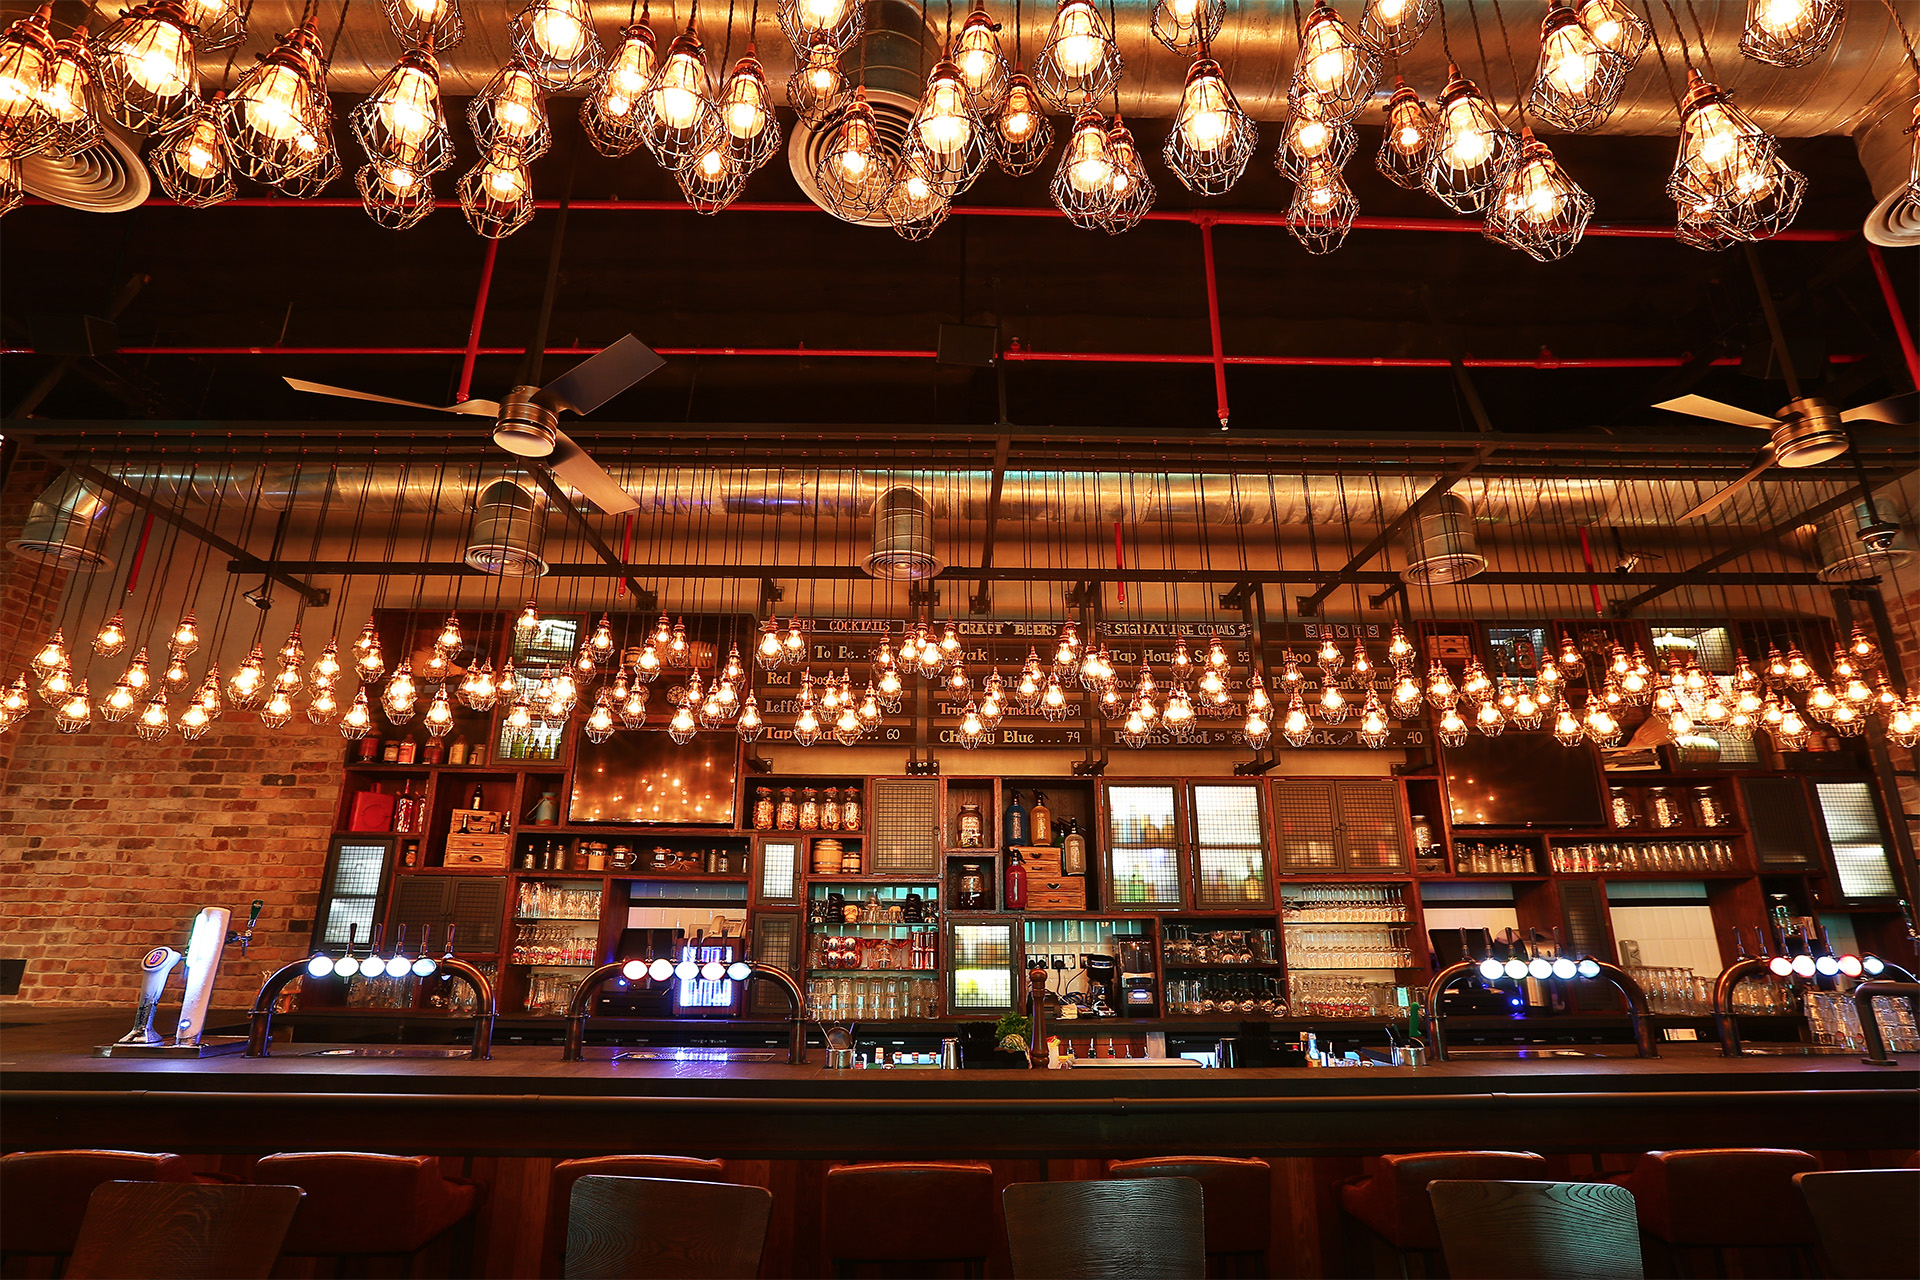 Creneau Interior Design Agency Dubai Middle East Tap House Bar Design